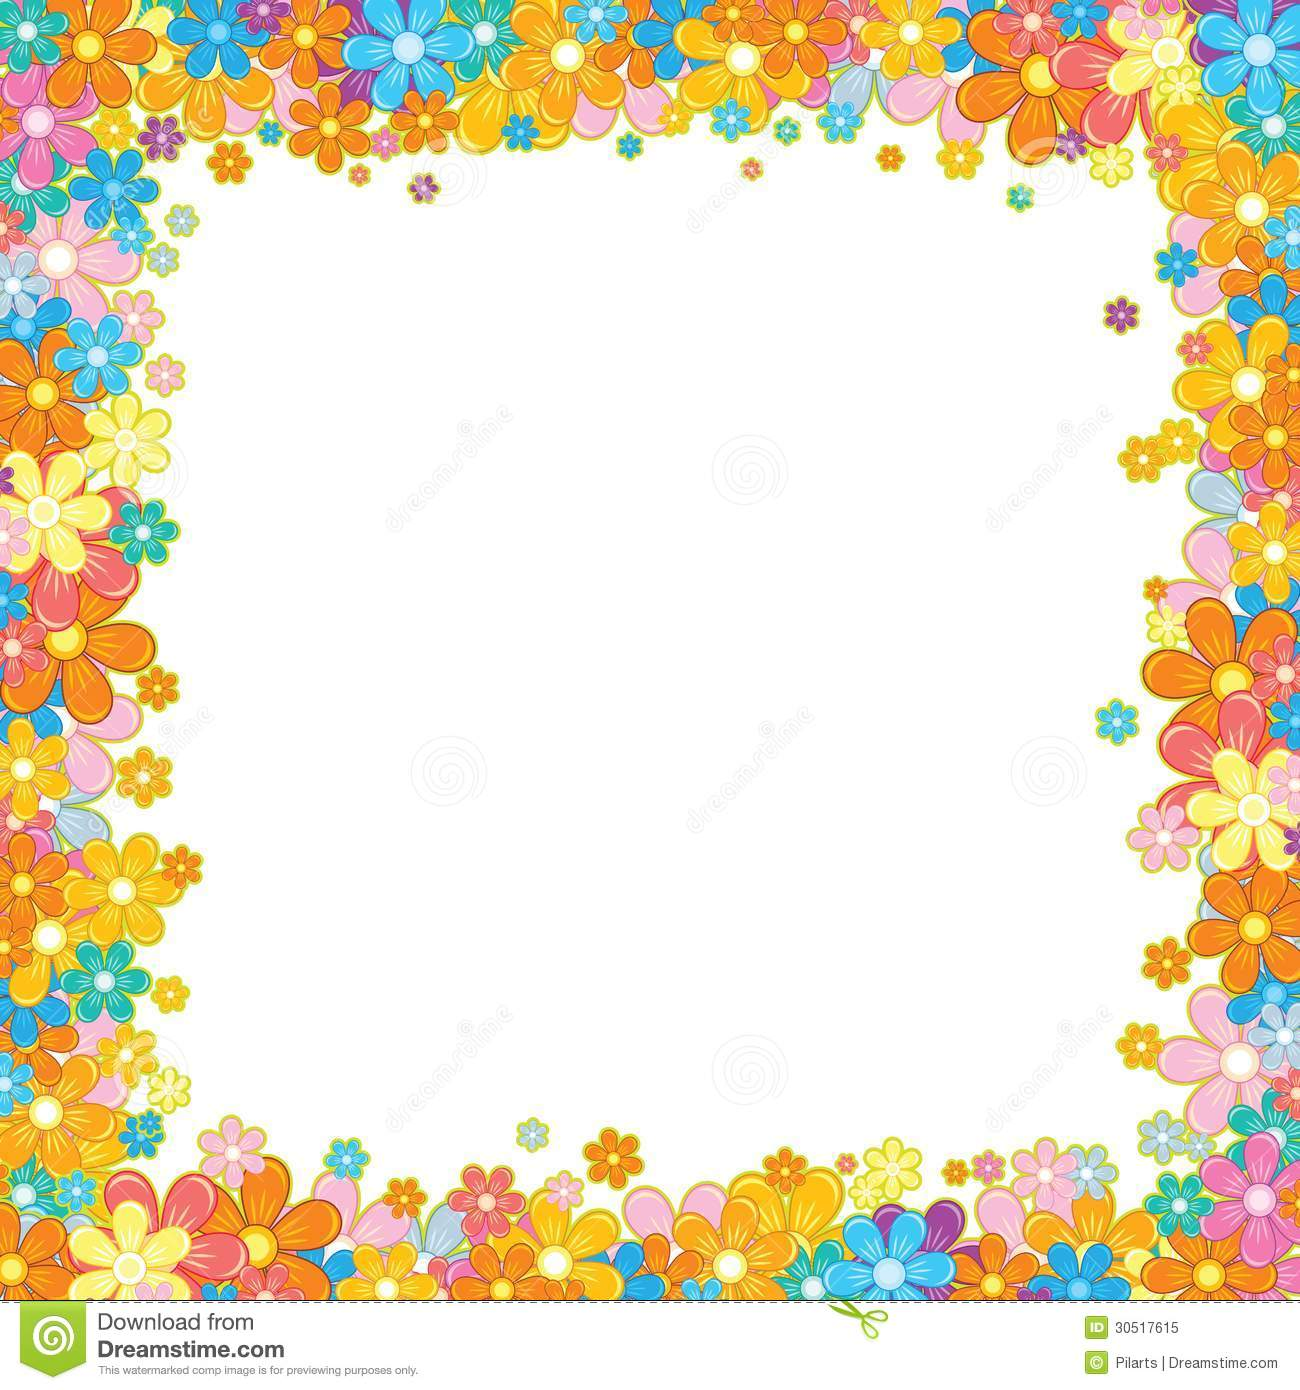 White Backgrounds With Colorful Borders Colorful Floral...